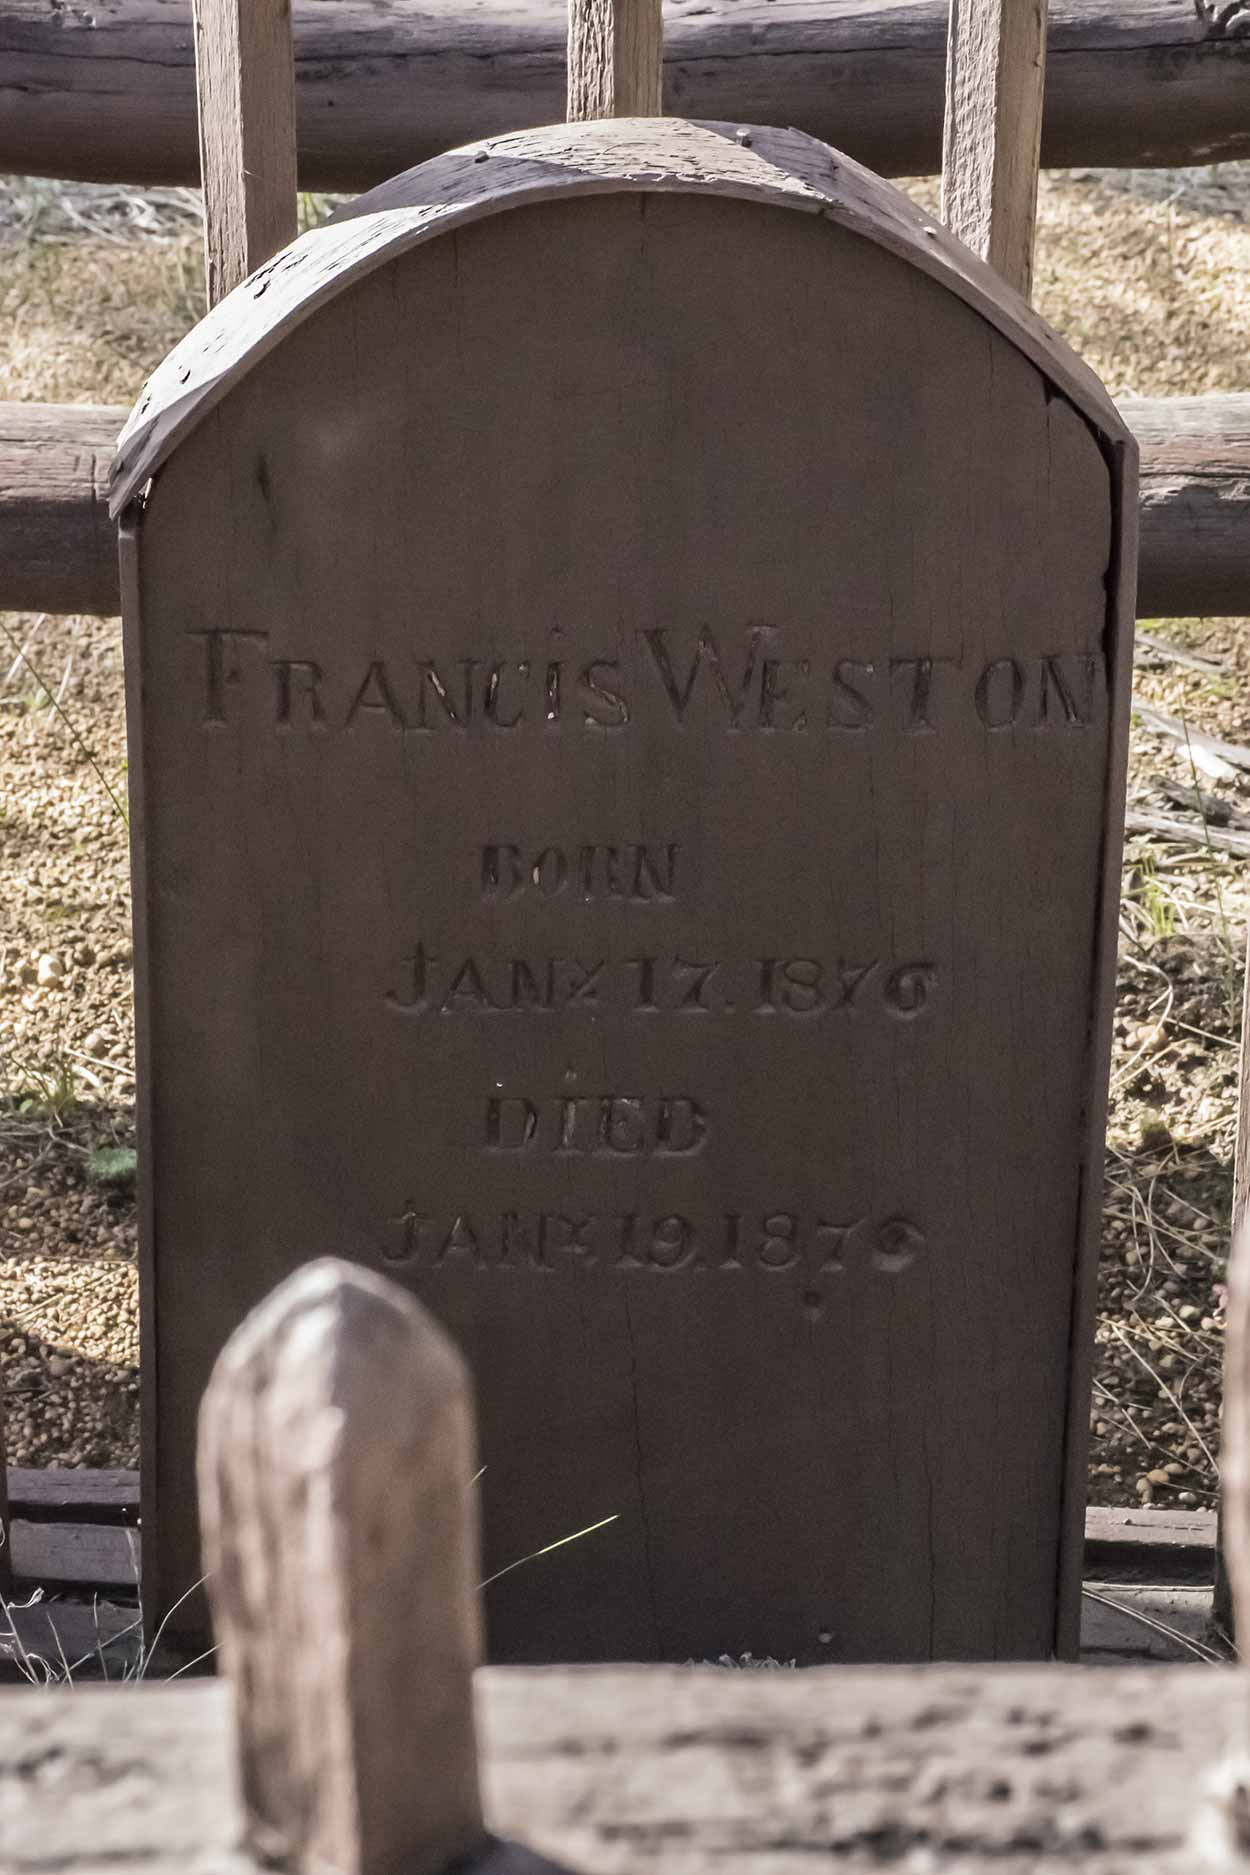 The heritage listed gravesite of Francis Weston, Korung National Park, Perth, Western Australia